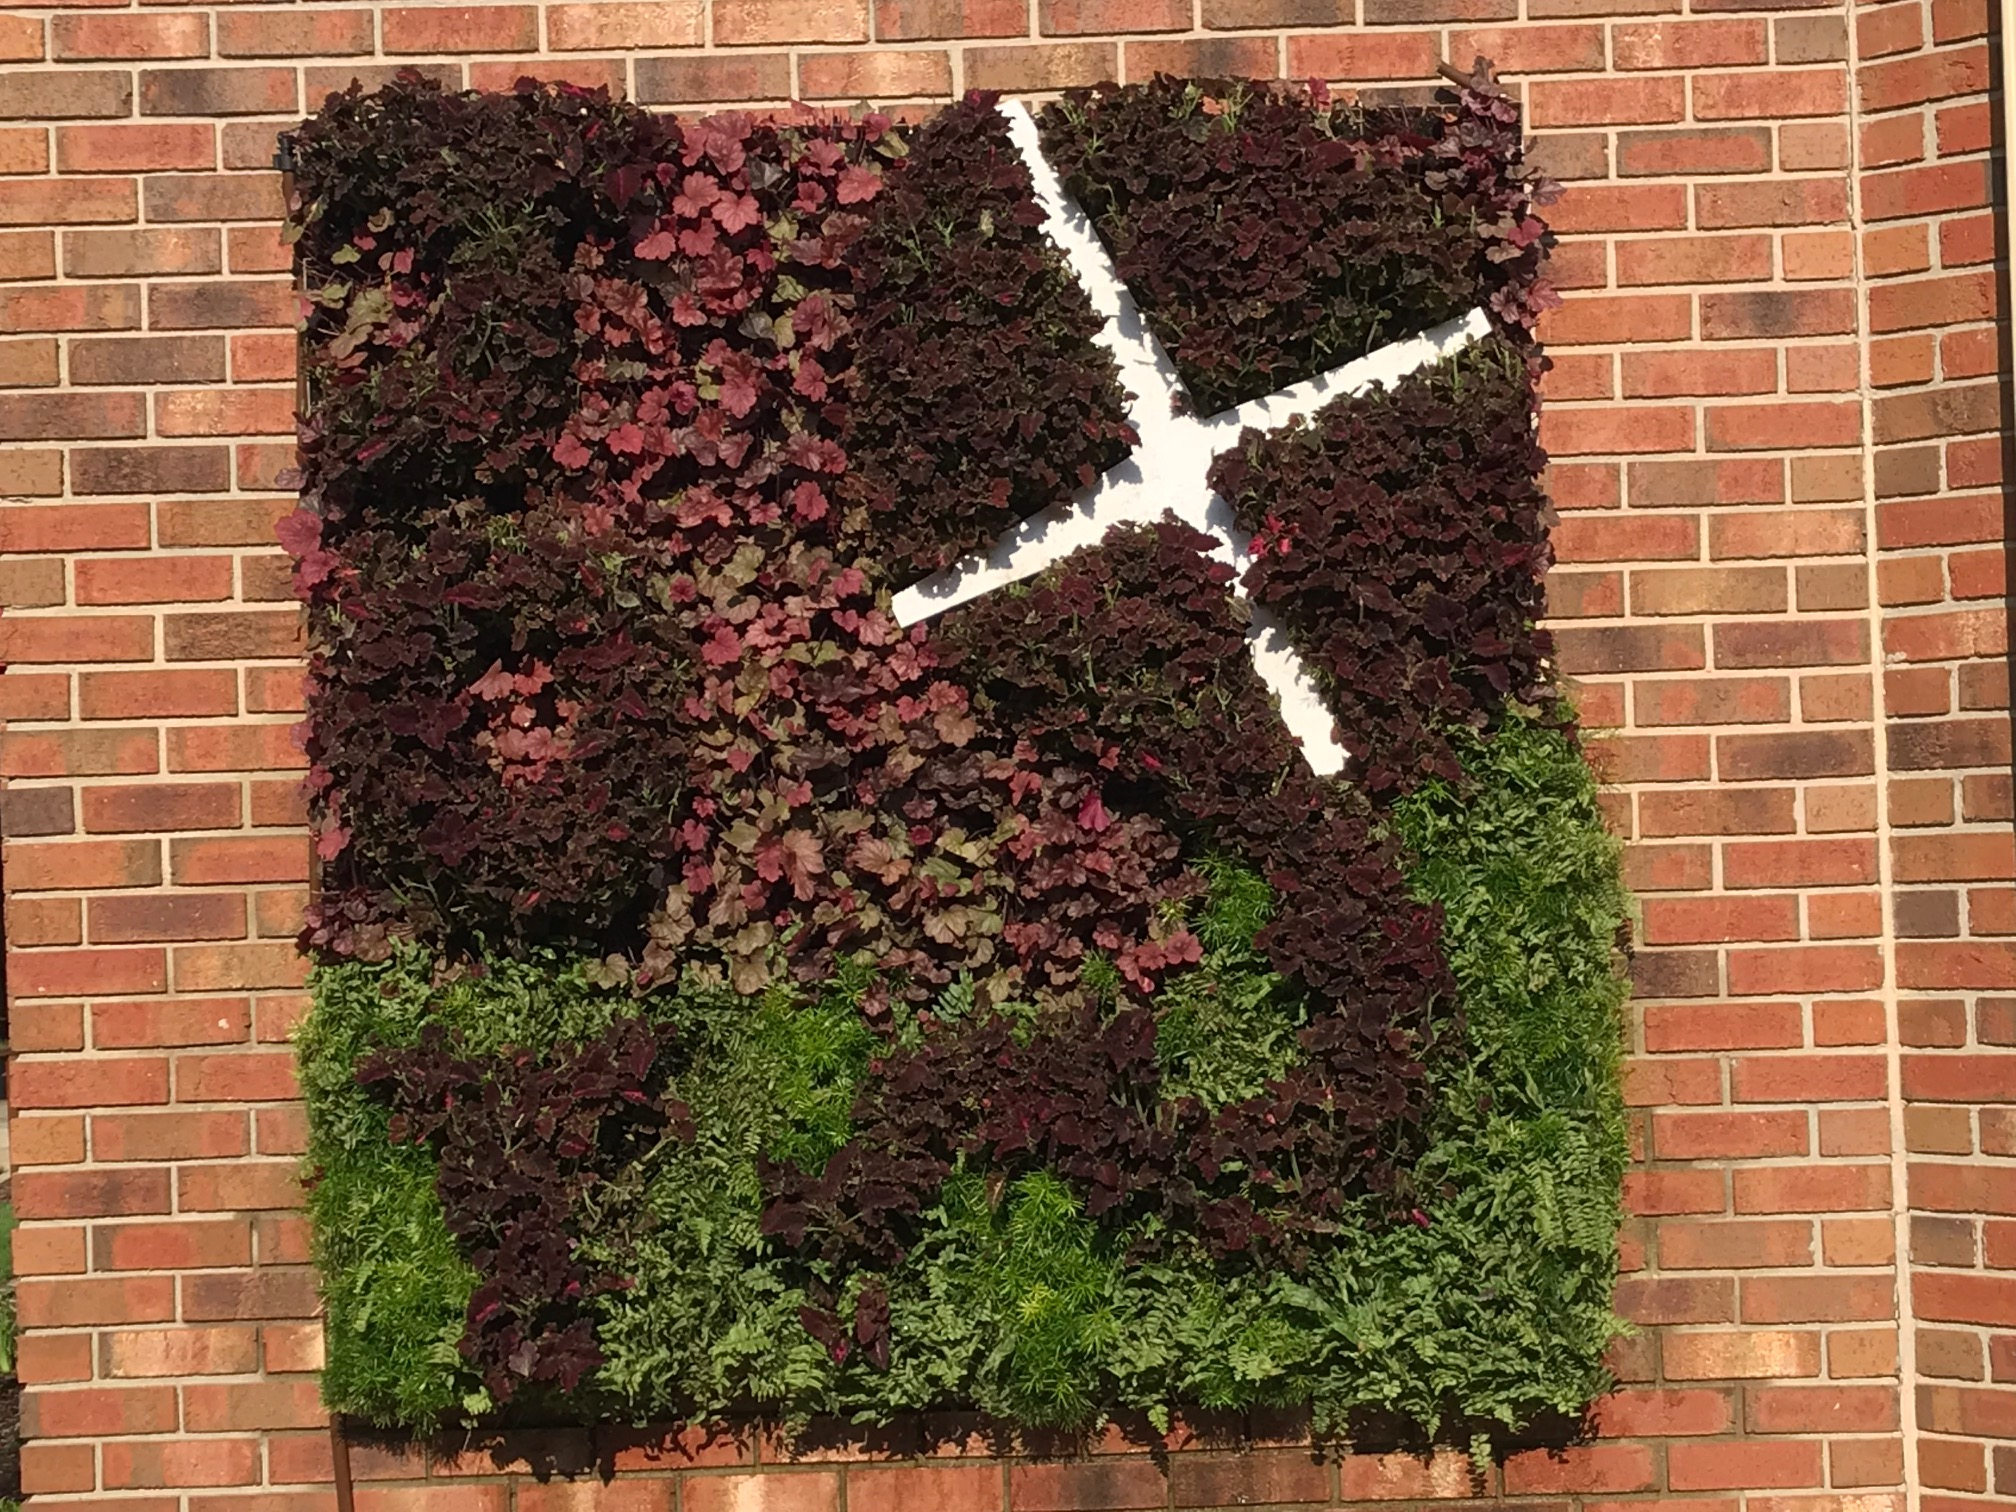 Living Wall at Woodhaven Baptist Church